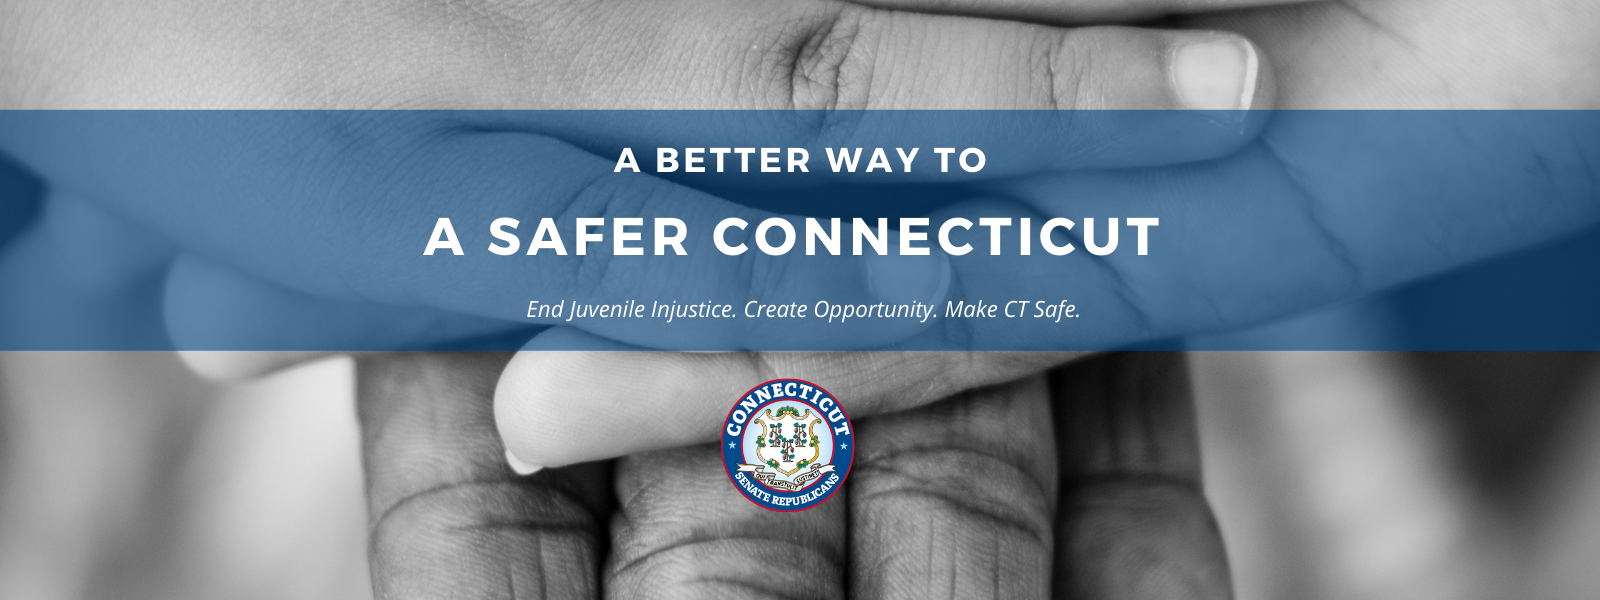 A Better Way to a Safer Connecticut